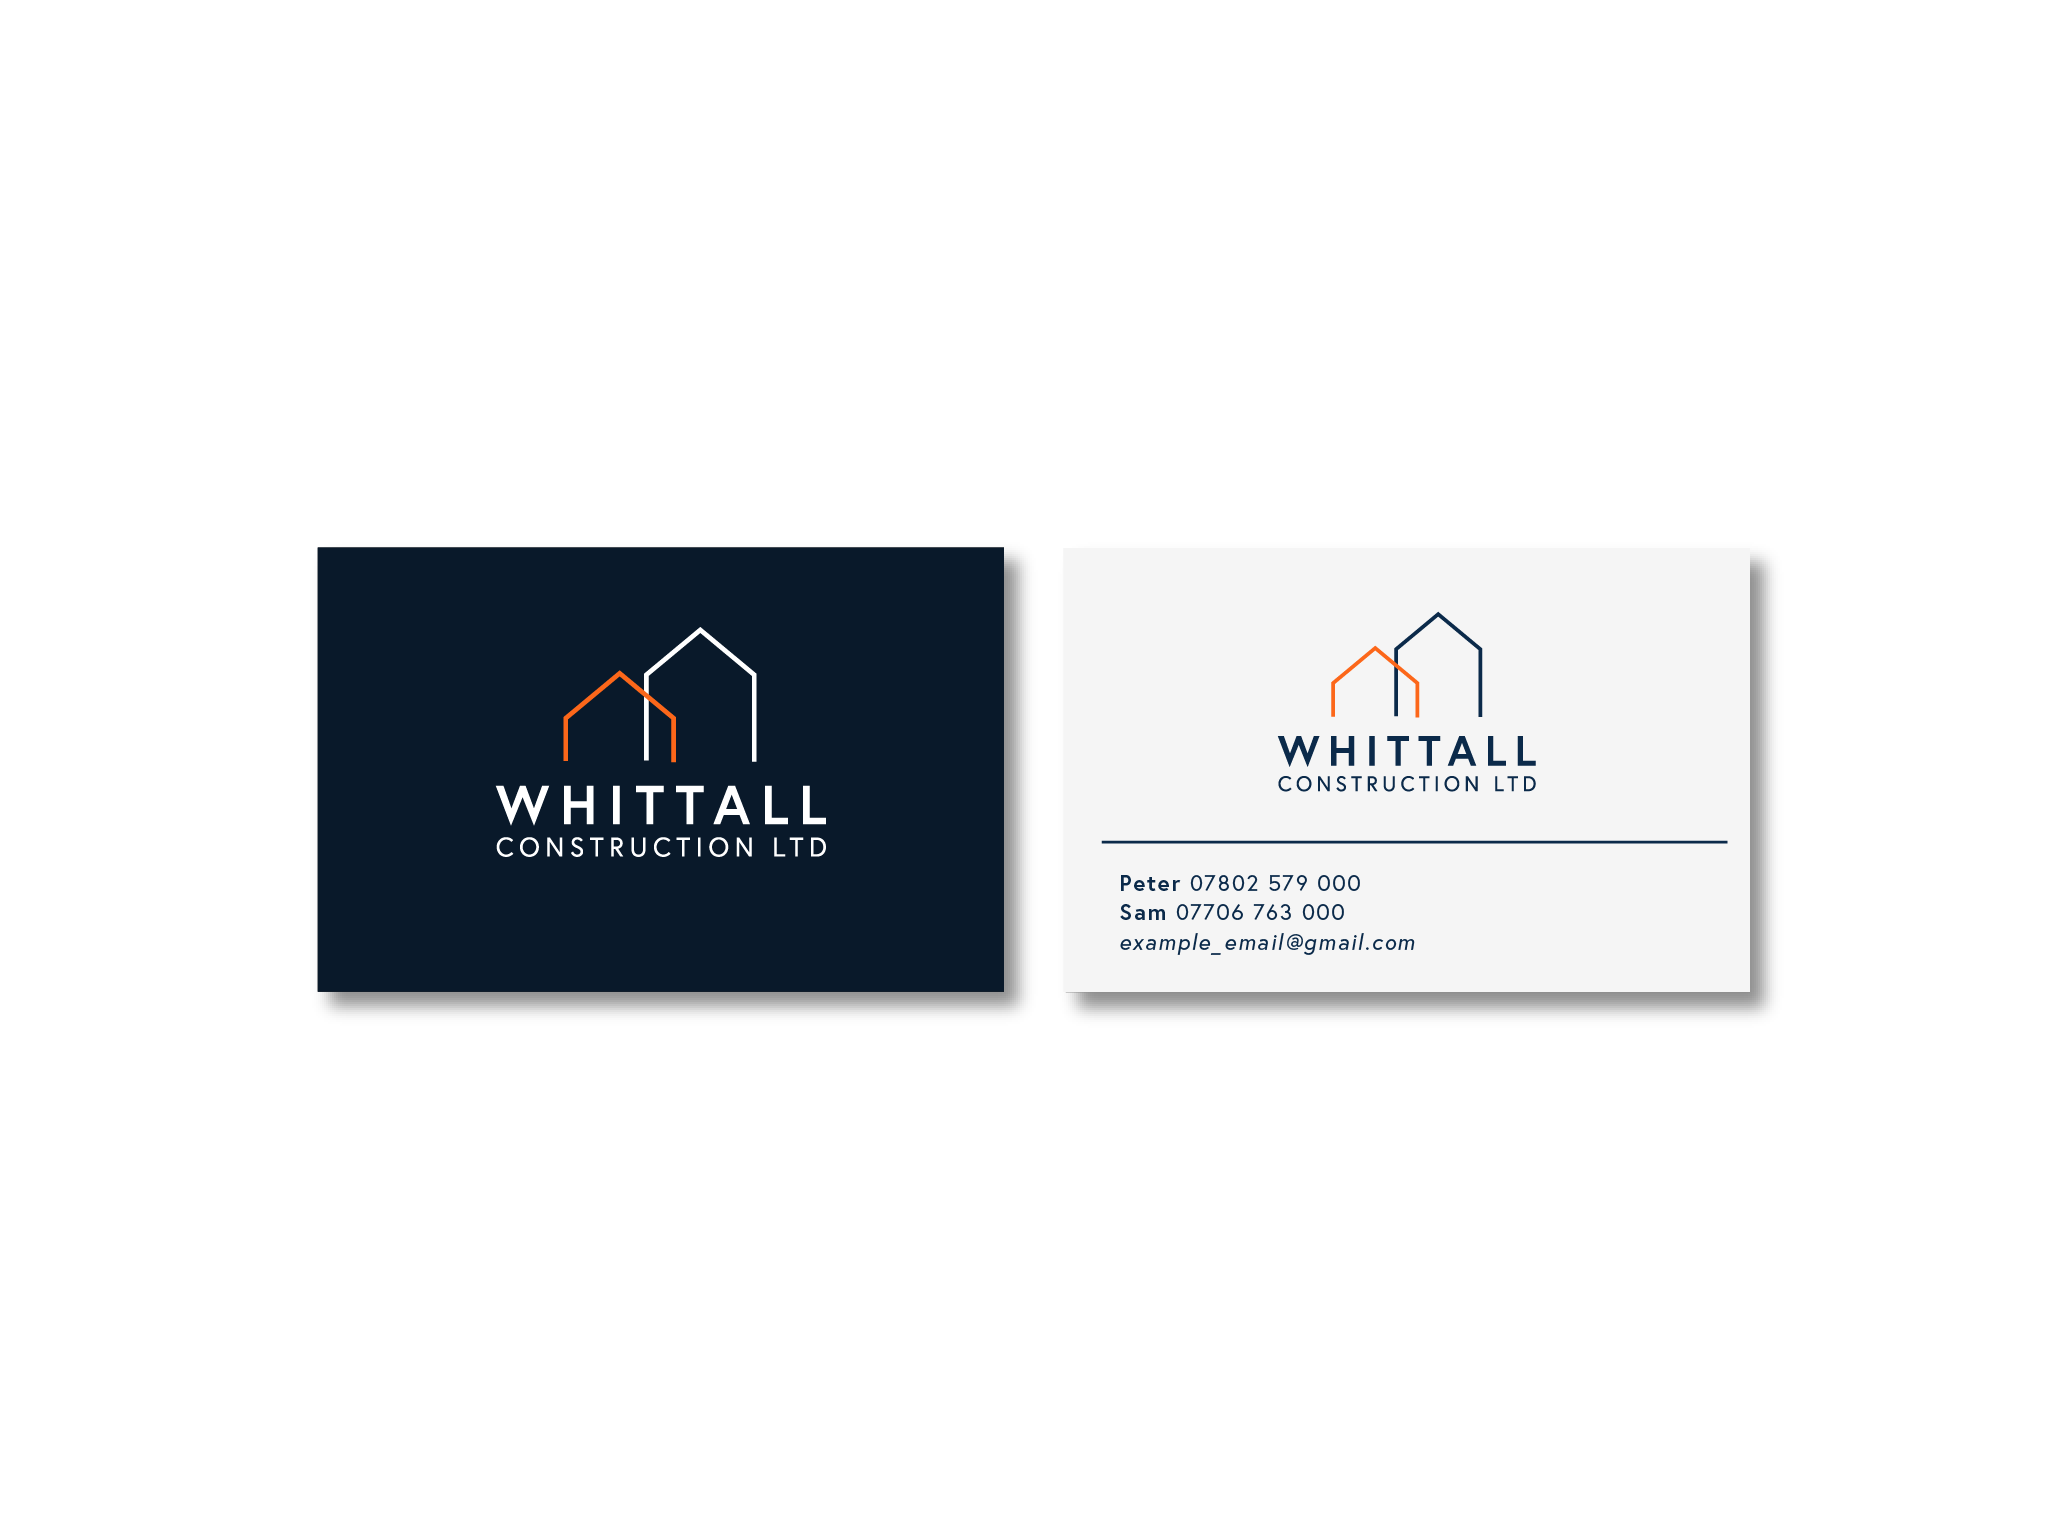 Lisa+Claire+Stewart+Design+Whittall+Construction+Logo+.png